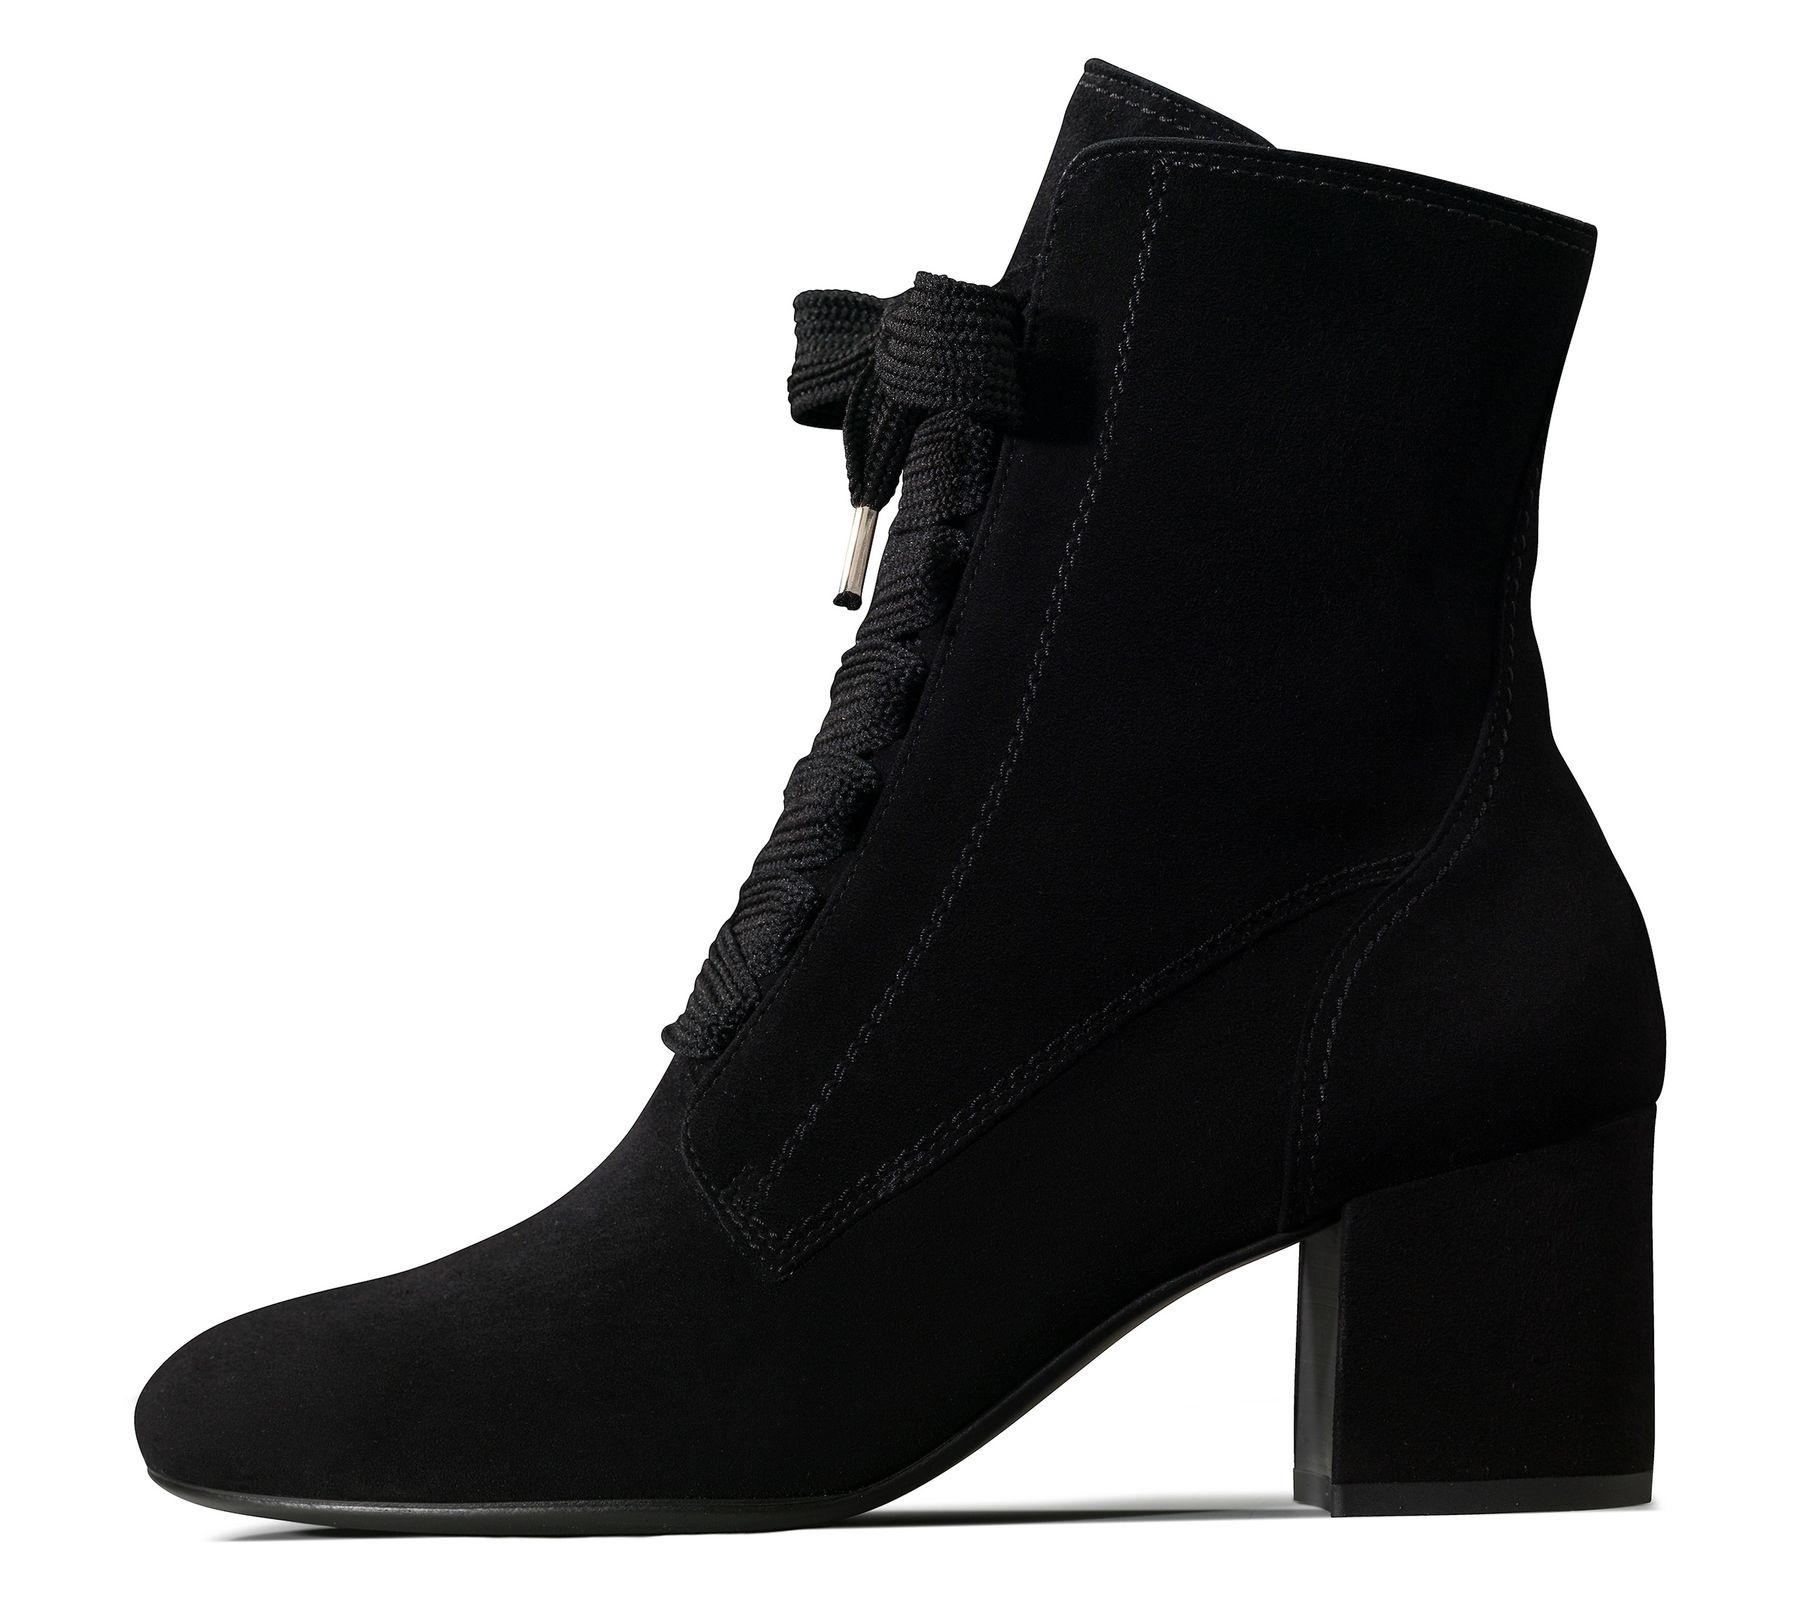 6b3b7489a8968 Stylish Lace-up Ankle Boots - Paul Green